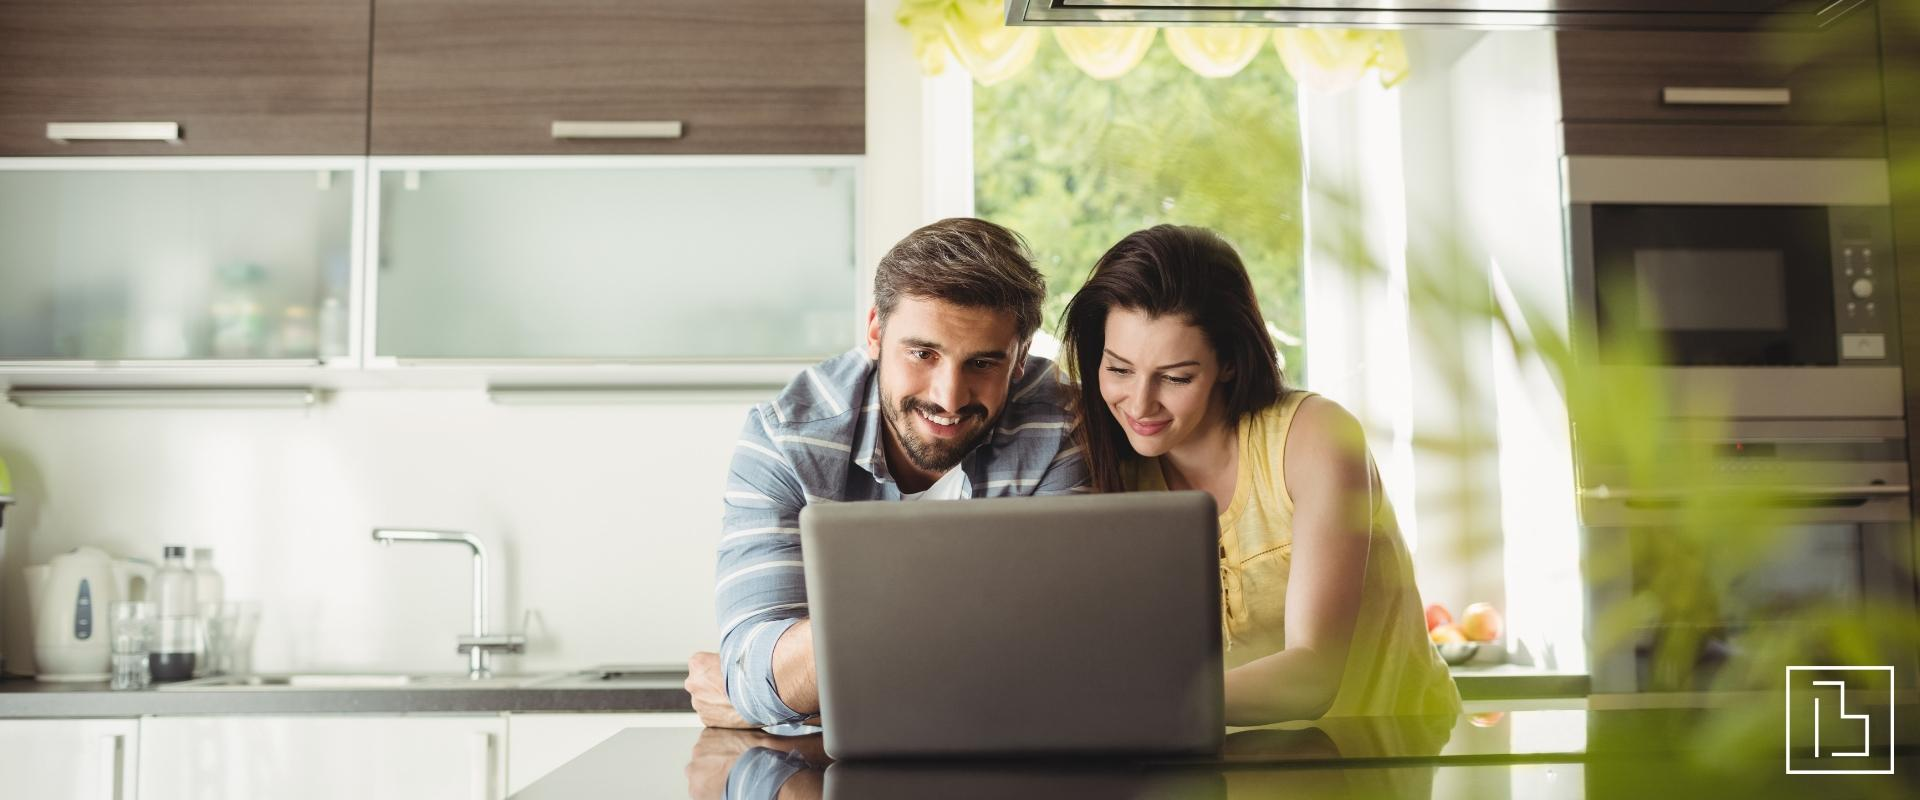 Two people looking at laptop in a kitchen - Beachworks LLC